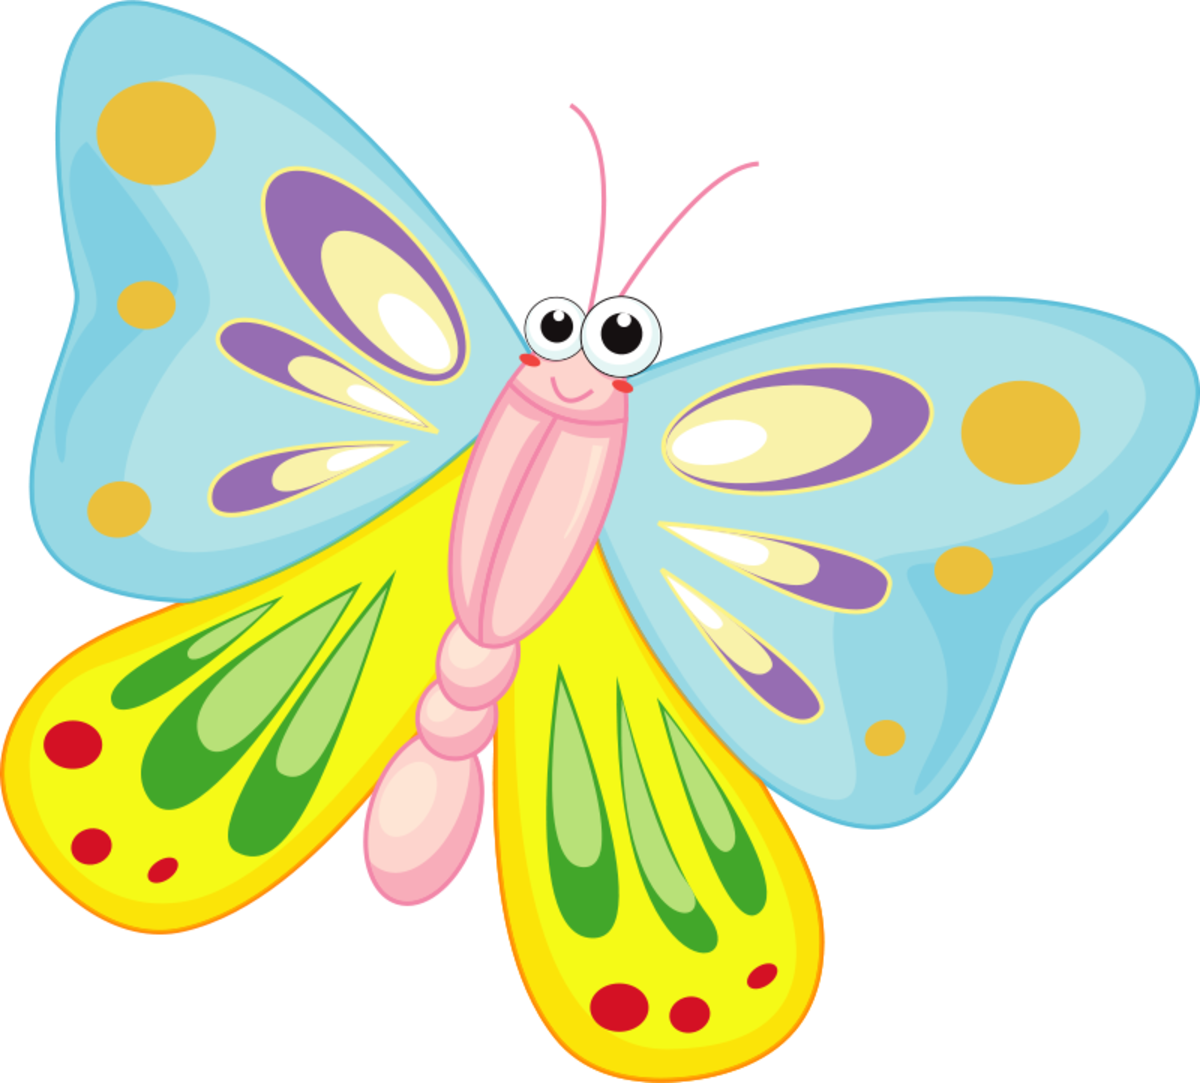 Cartoon Butterfly with Big Eyes